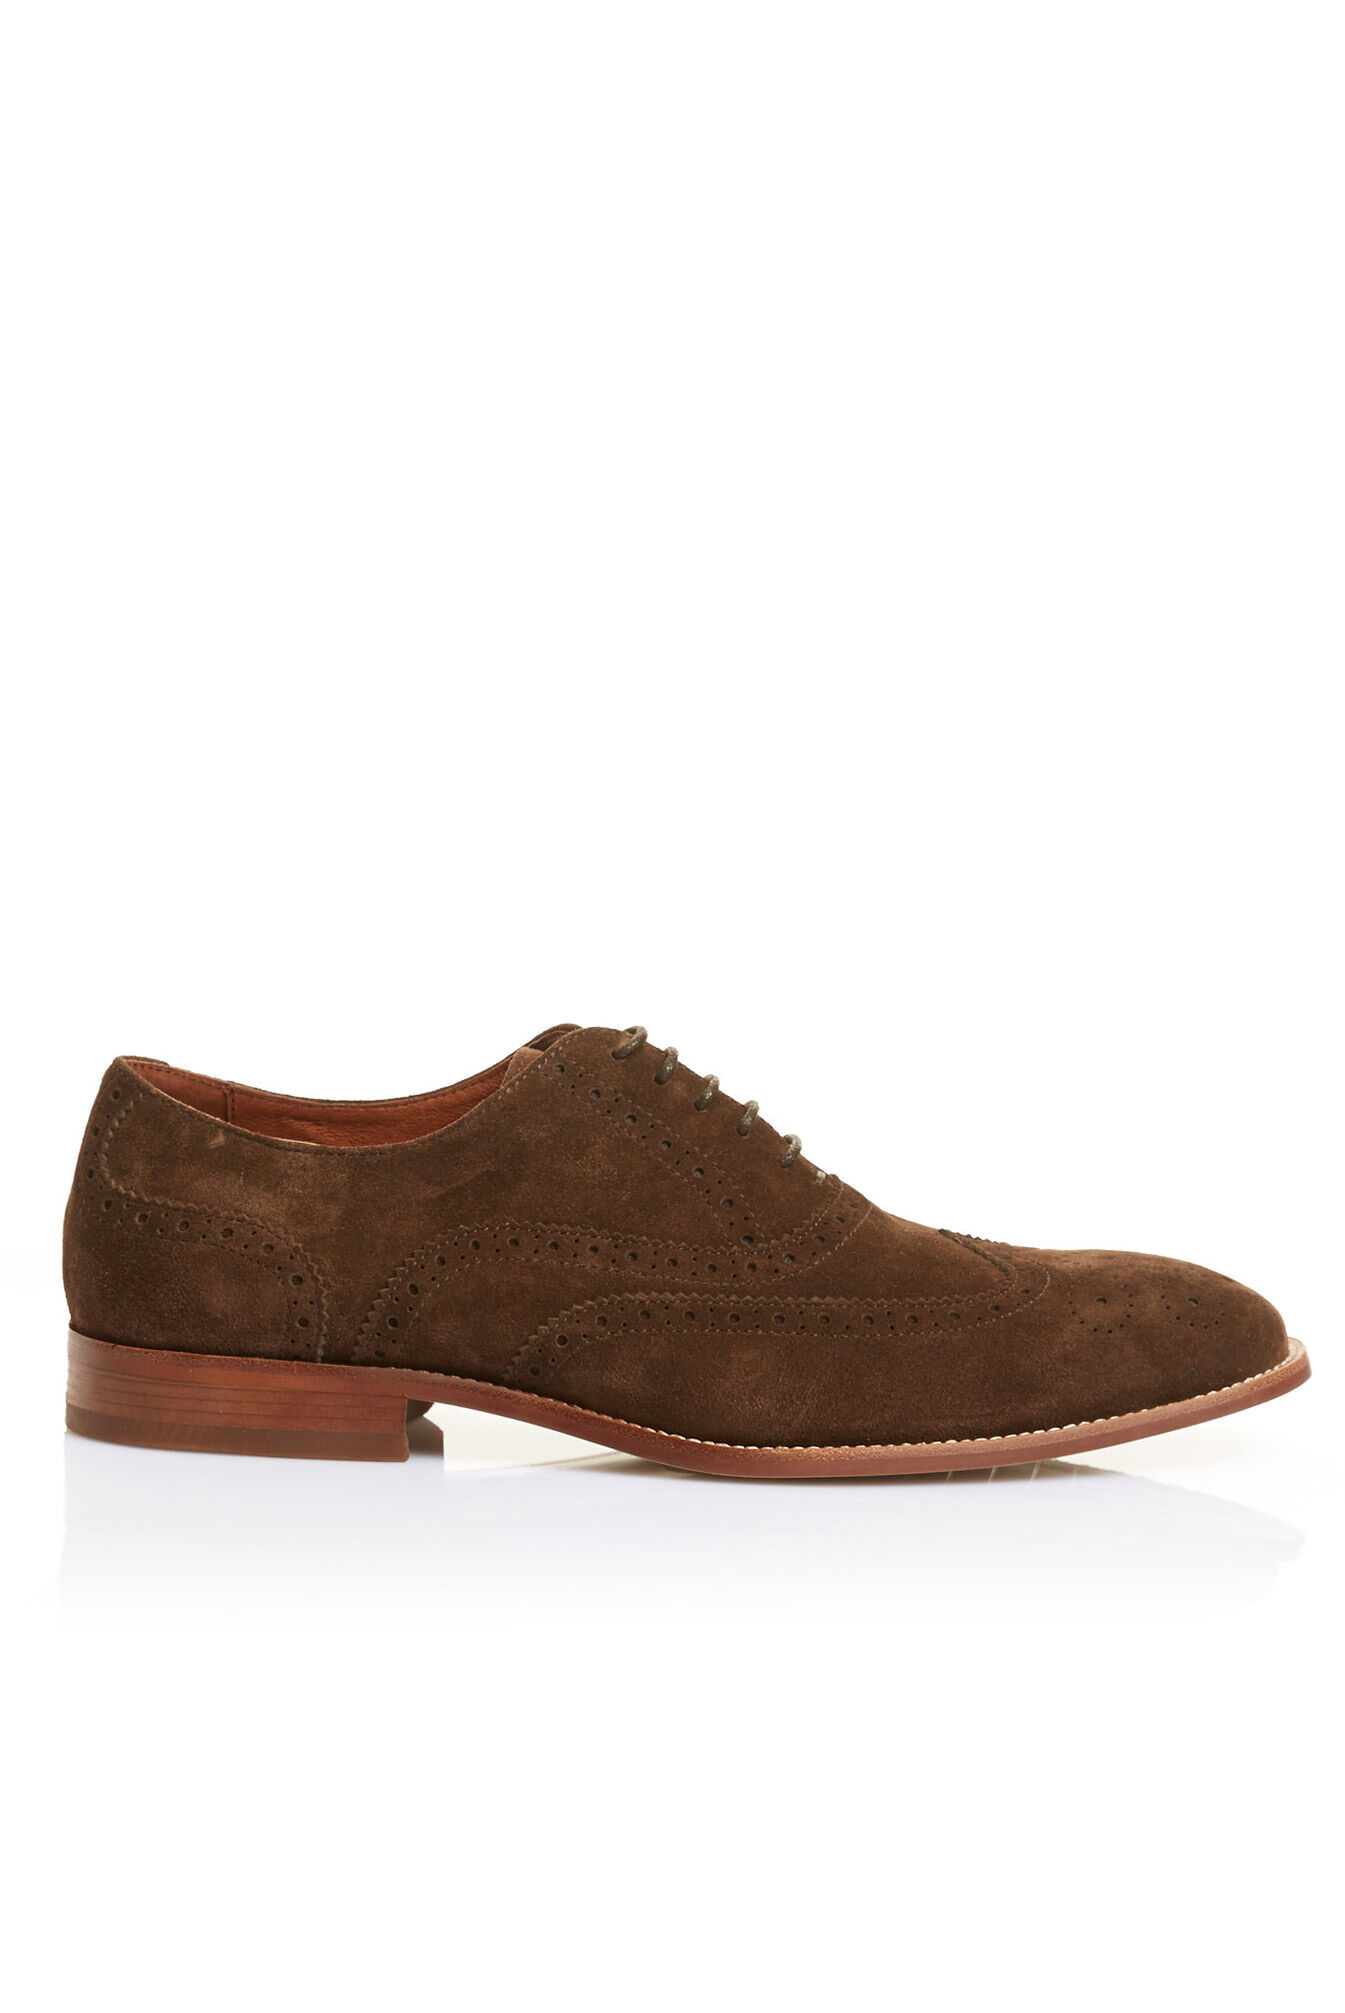 saba murray broguechocolate45